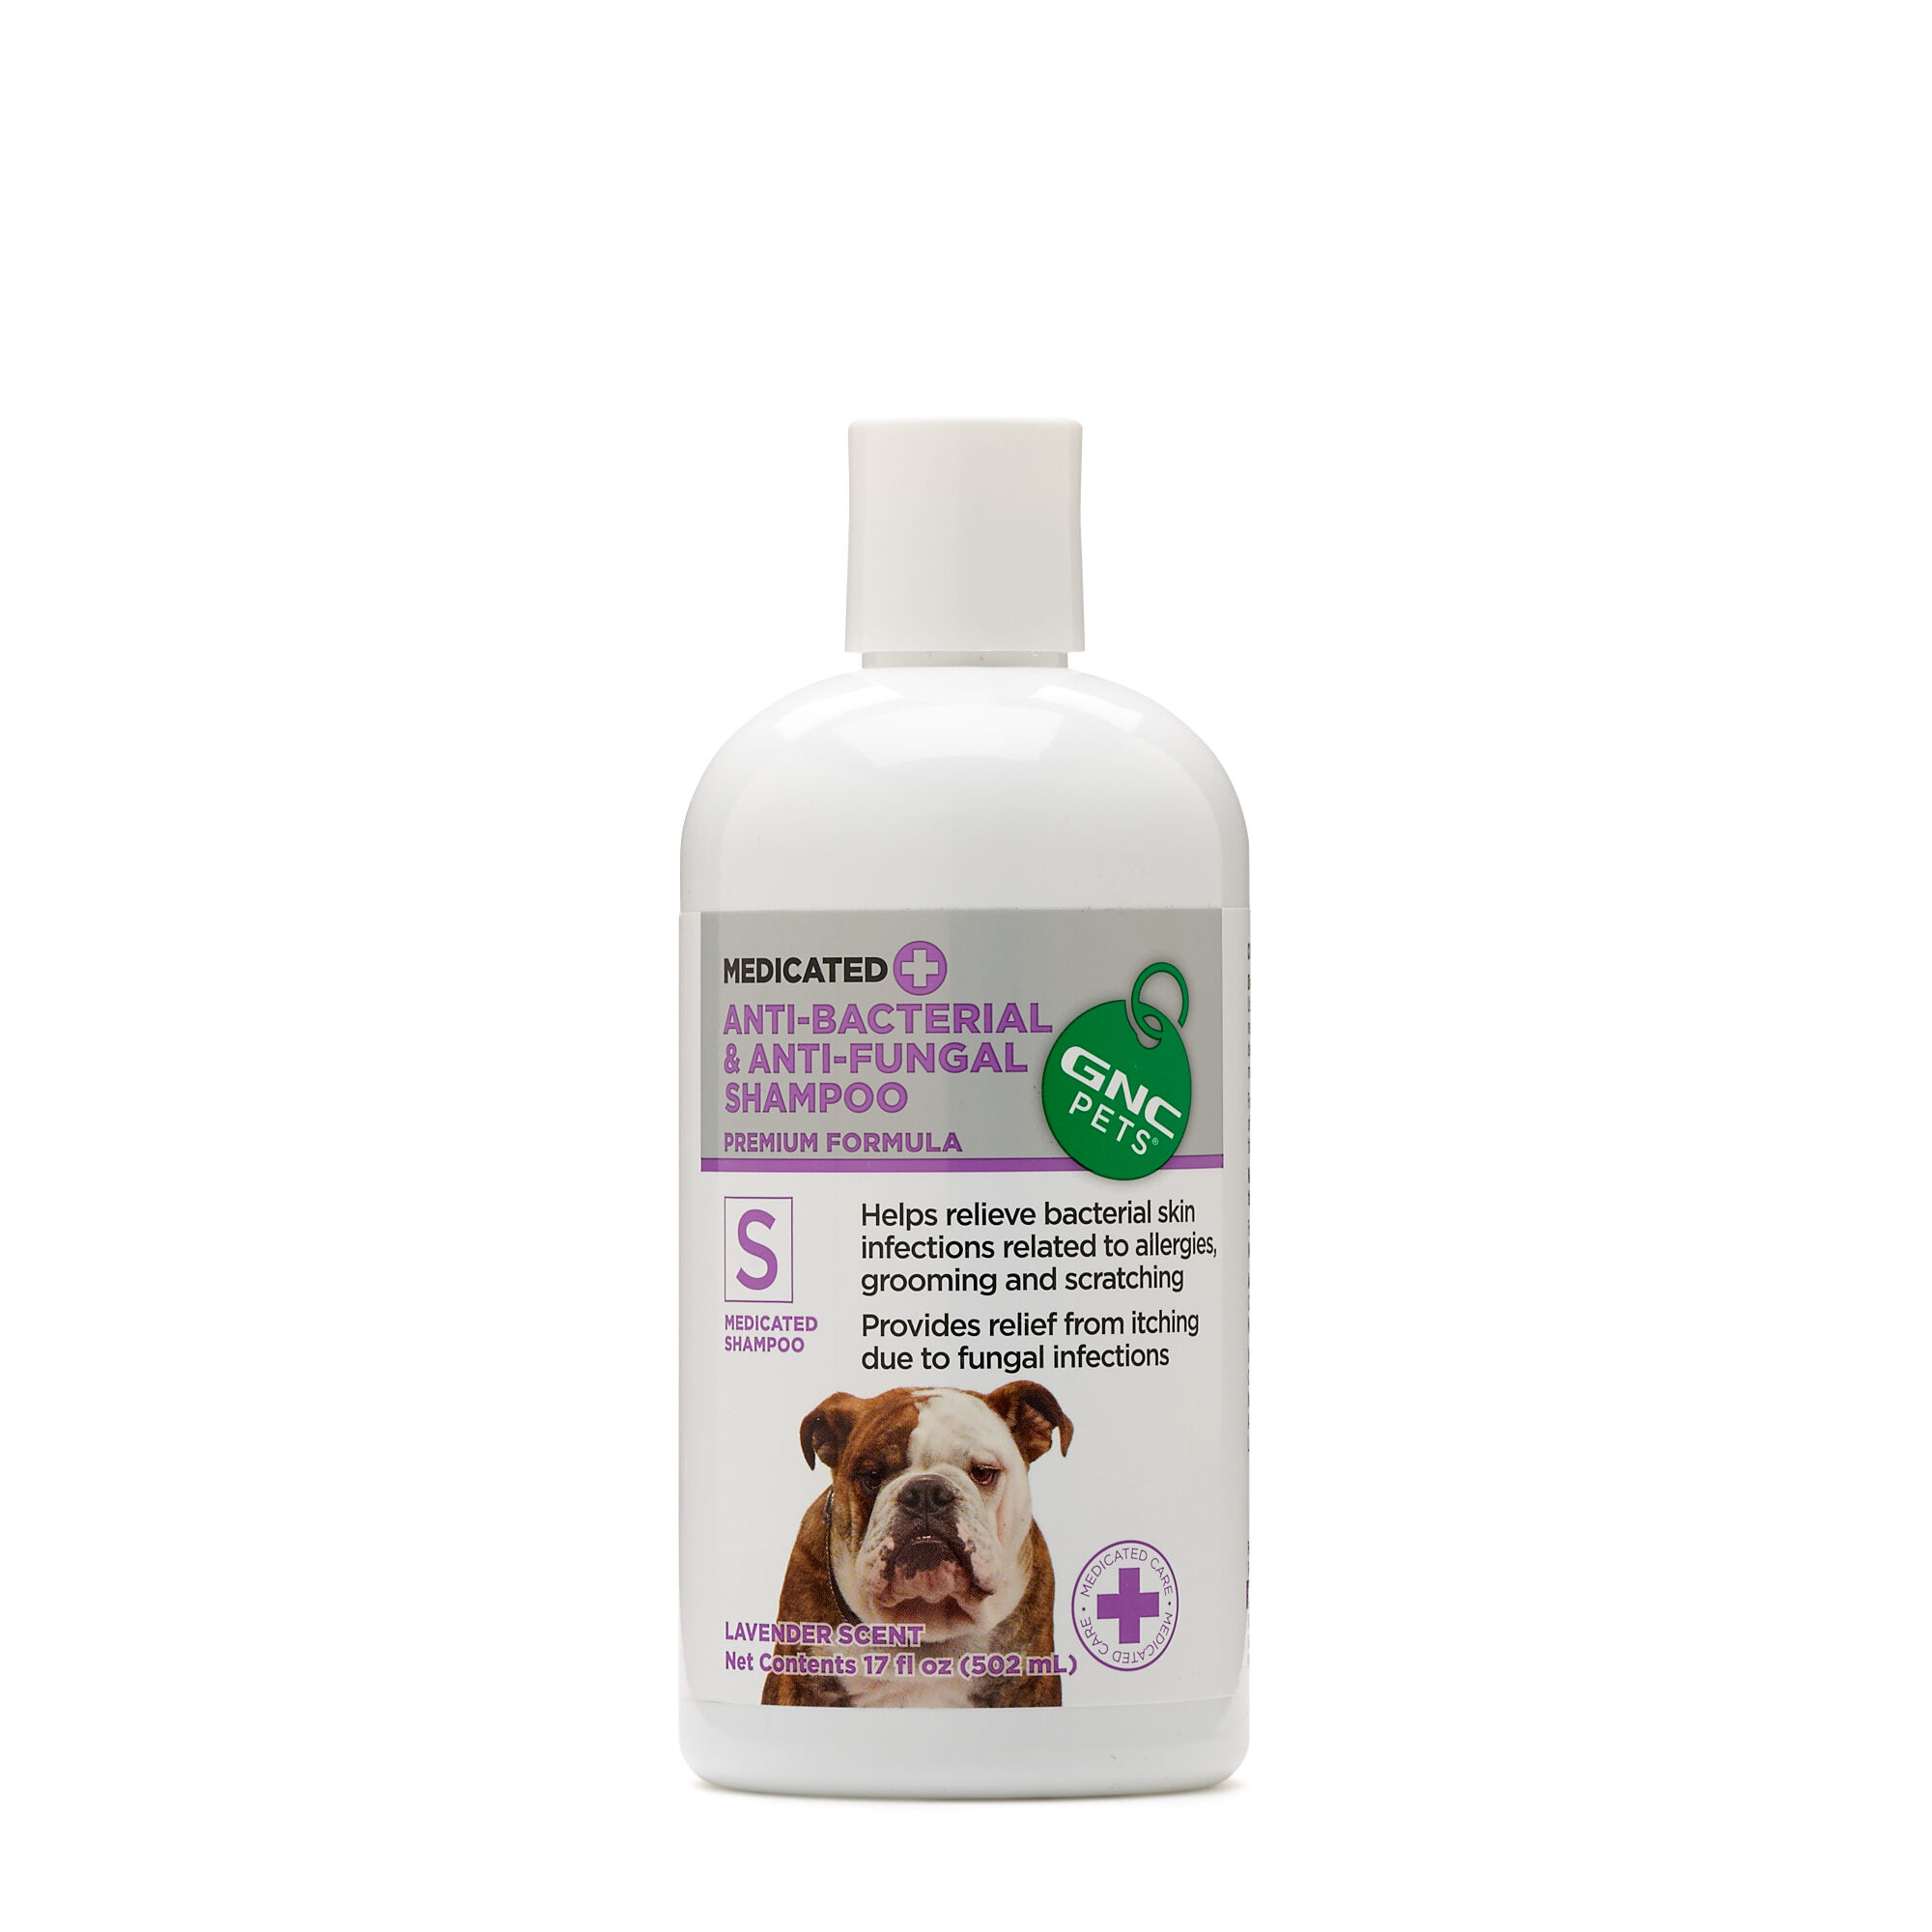 GNC Pets Medicated Anti-Bacterial & Anti-Fungal Shampoo- Lavender Scent